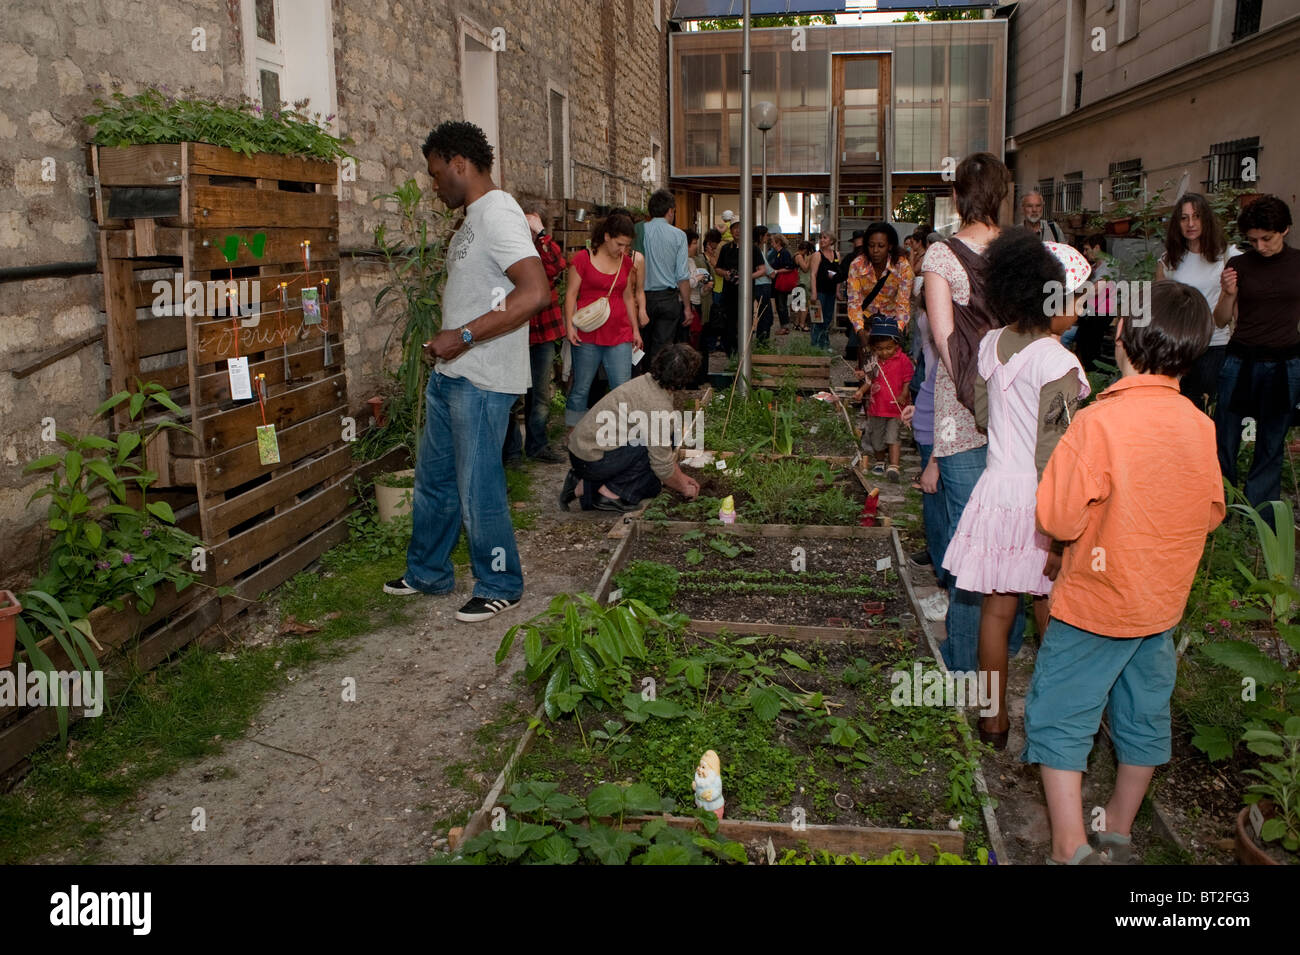 Paris France French Families Visiting Backyard Community Garden Low Income Public Housing Building